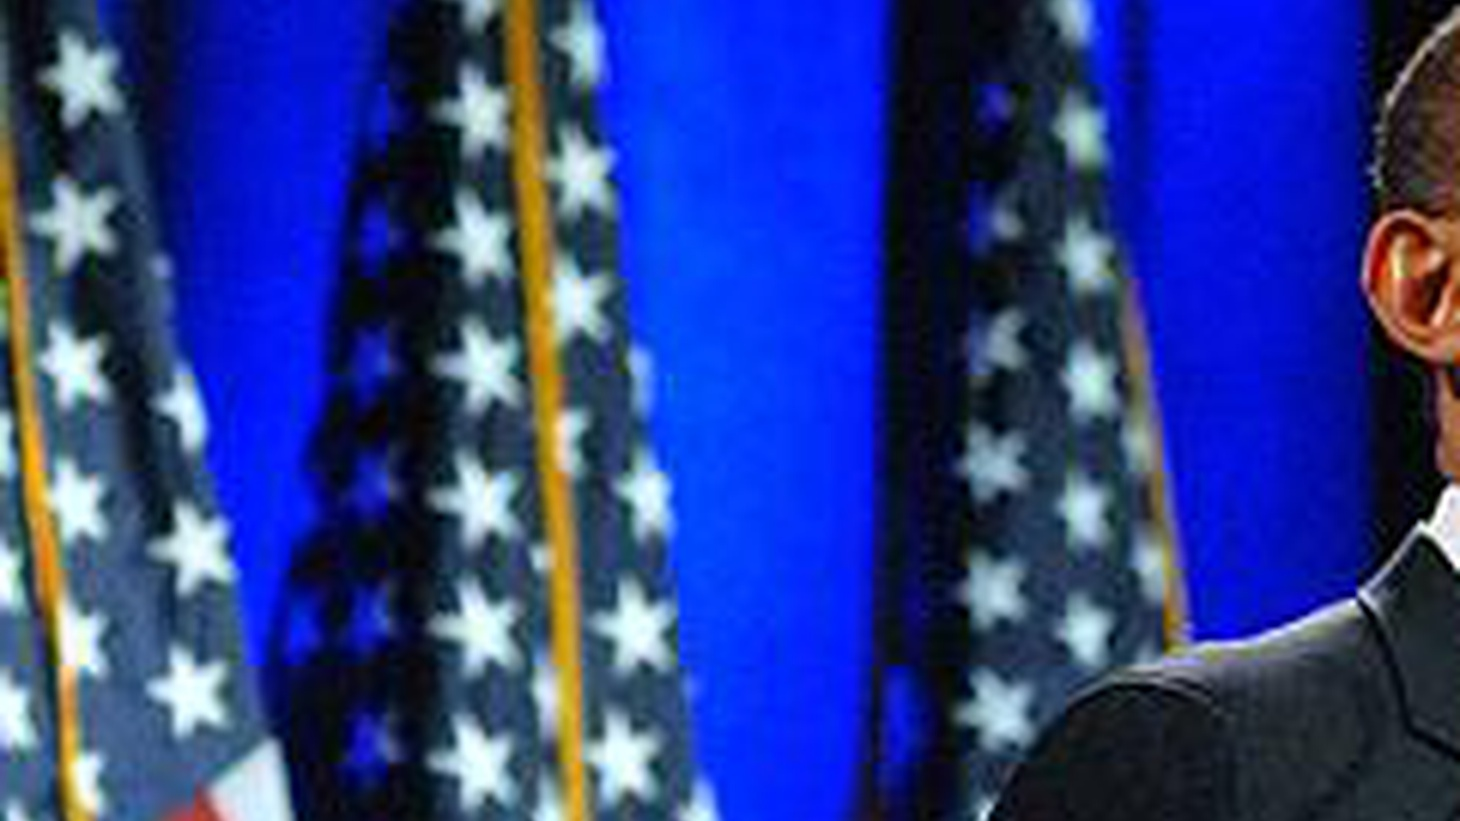 The furor over Barack Obama's church has pushed his presidential campaign into the most dangerous possible political territory -- questions about his patriotism. Has the founding fathers' notion of American exceptionalism created to an exceptionally patriotic country?  Guest host Lawrence O'Donnell talks about the defining role patriotism plays in American politics and what role patriotism plays in the politics of other countries. Also, President Bush signs legislation to protect the US-Mexico border, and a look at Hillary Clinton's daily schedules when she was First Lady.